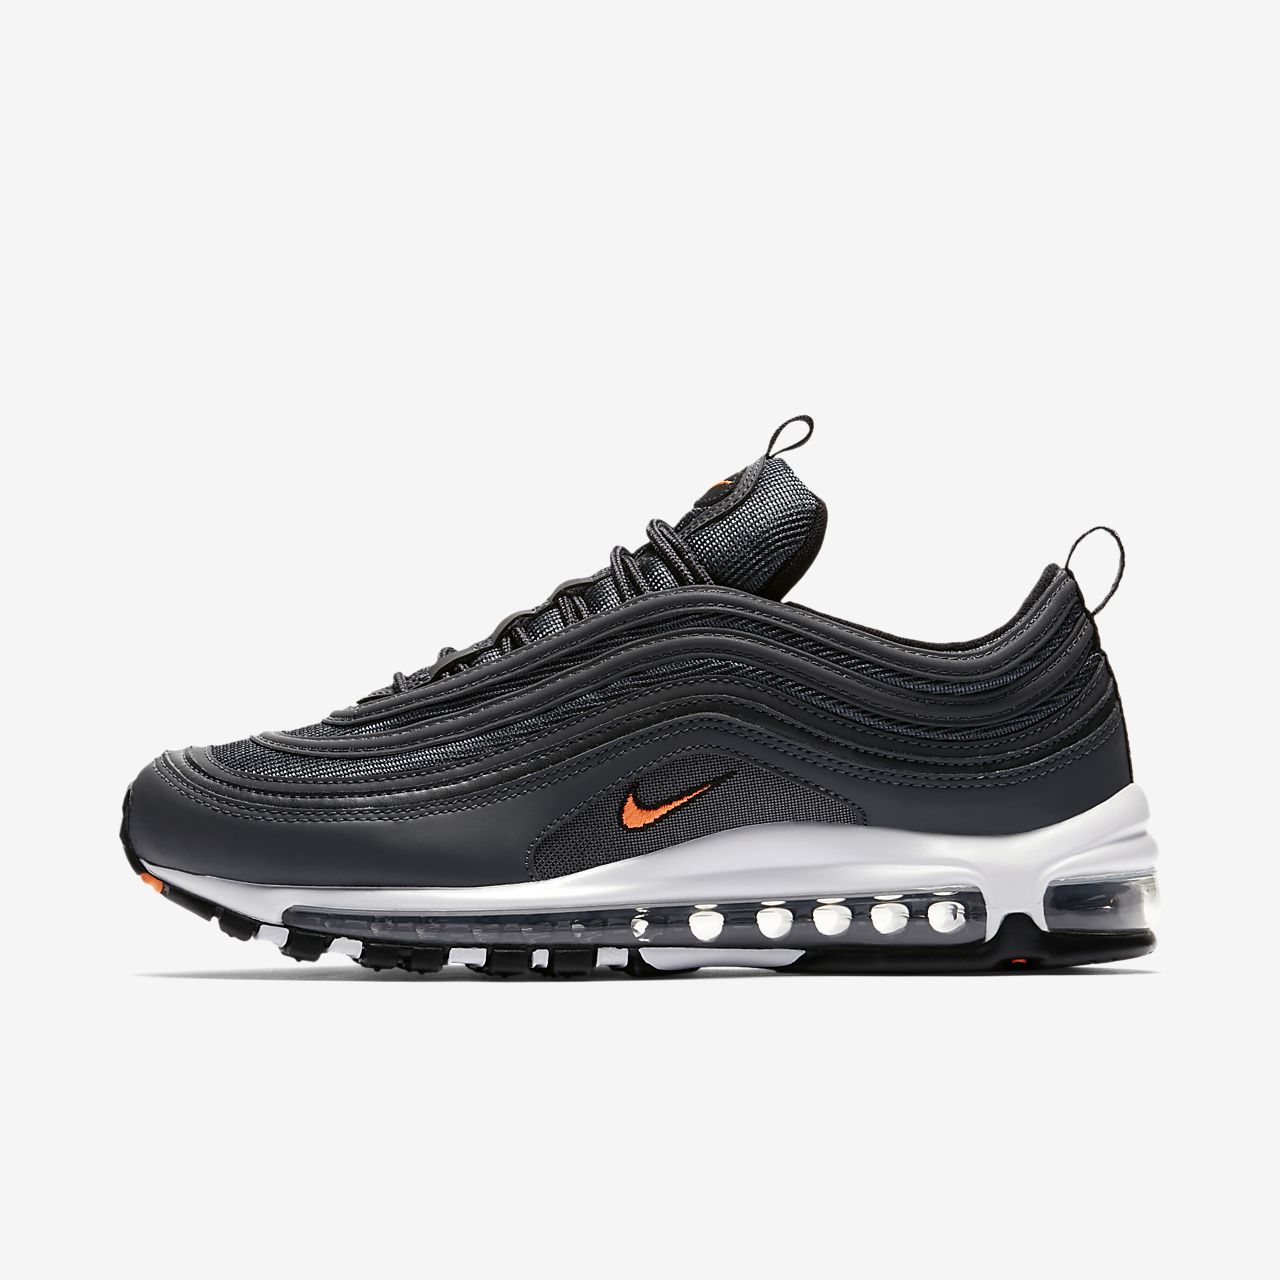 Chaussure Nike Air Max 97 pour Homme